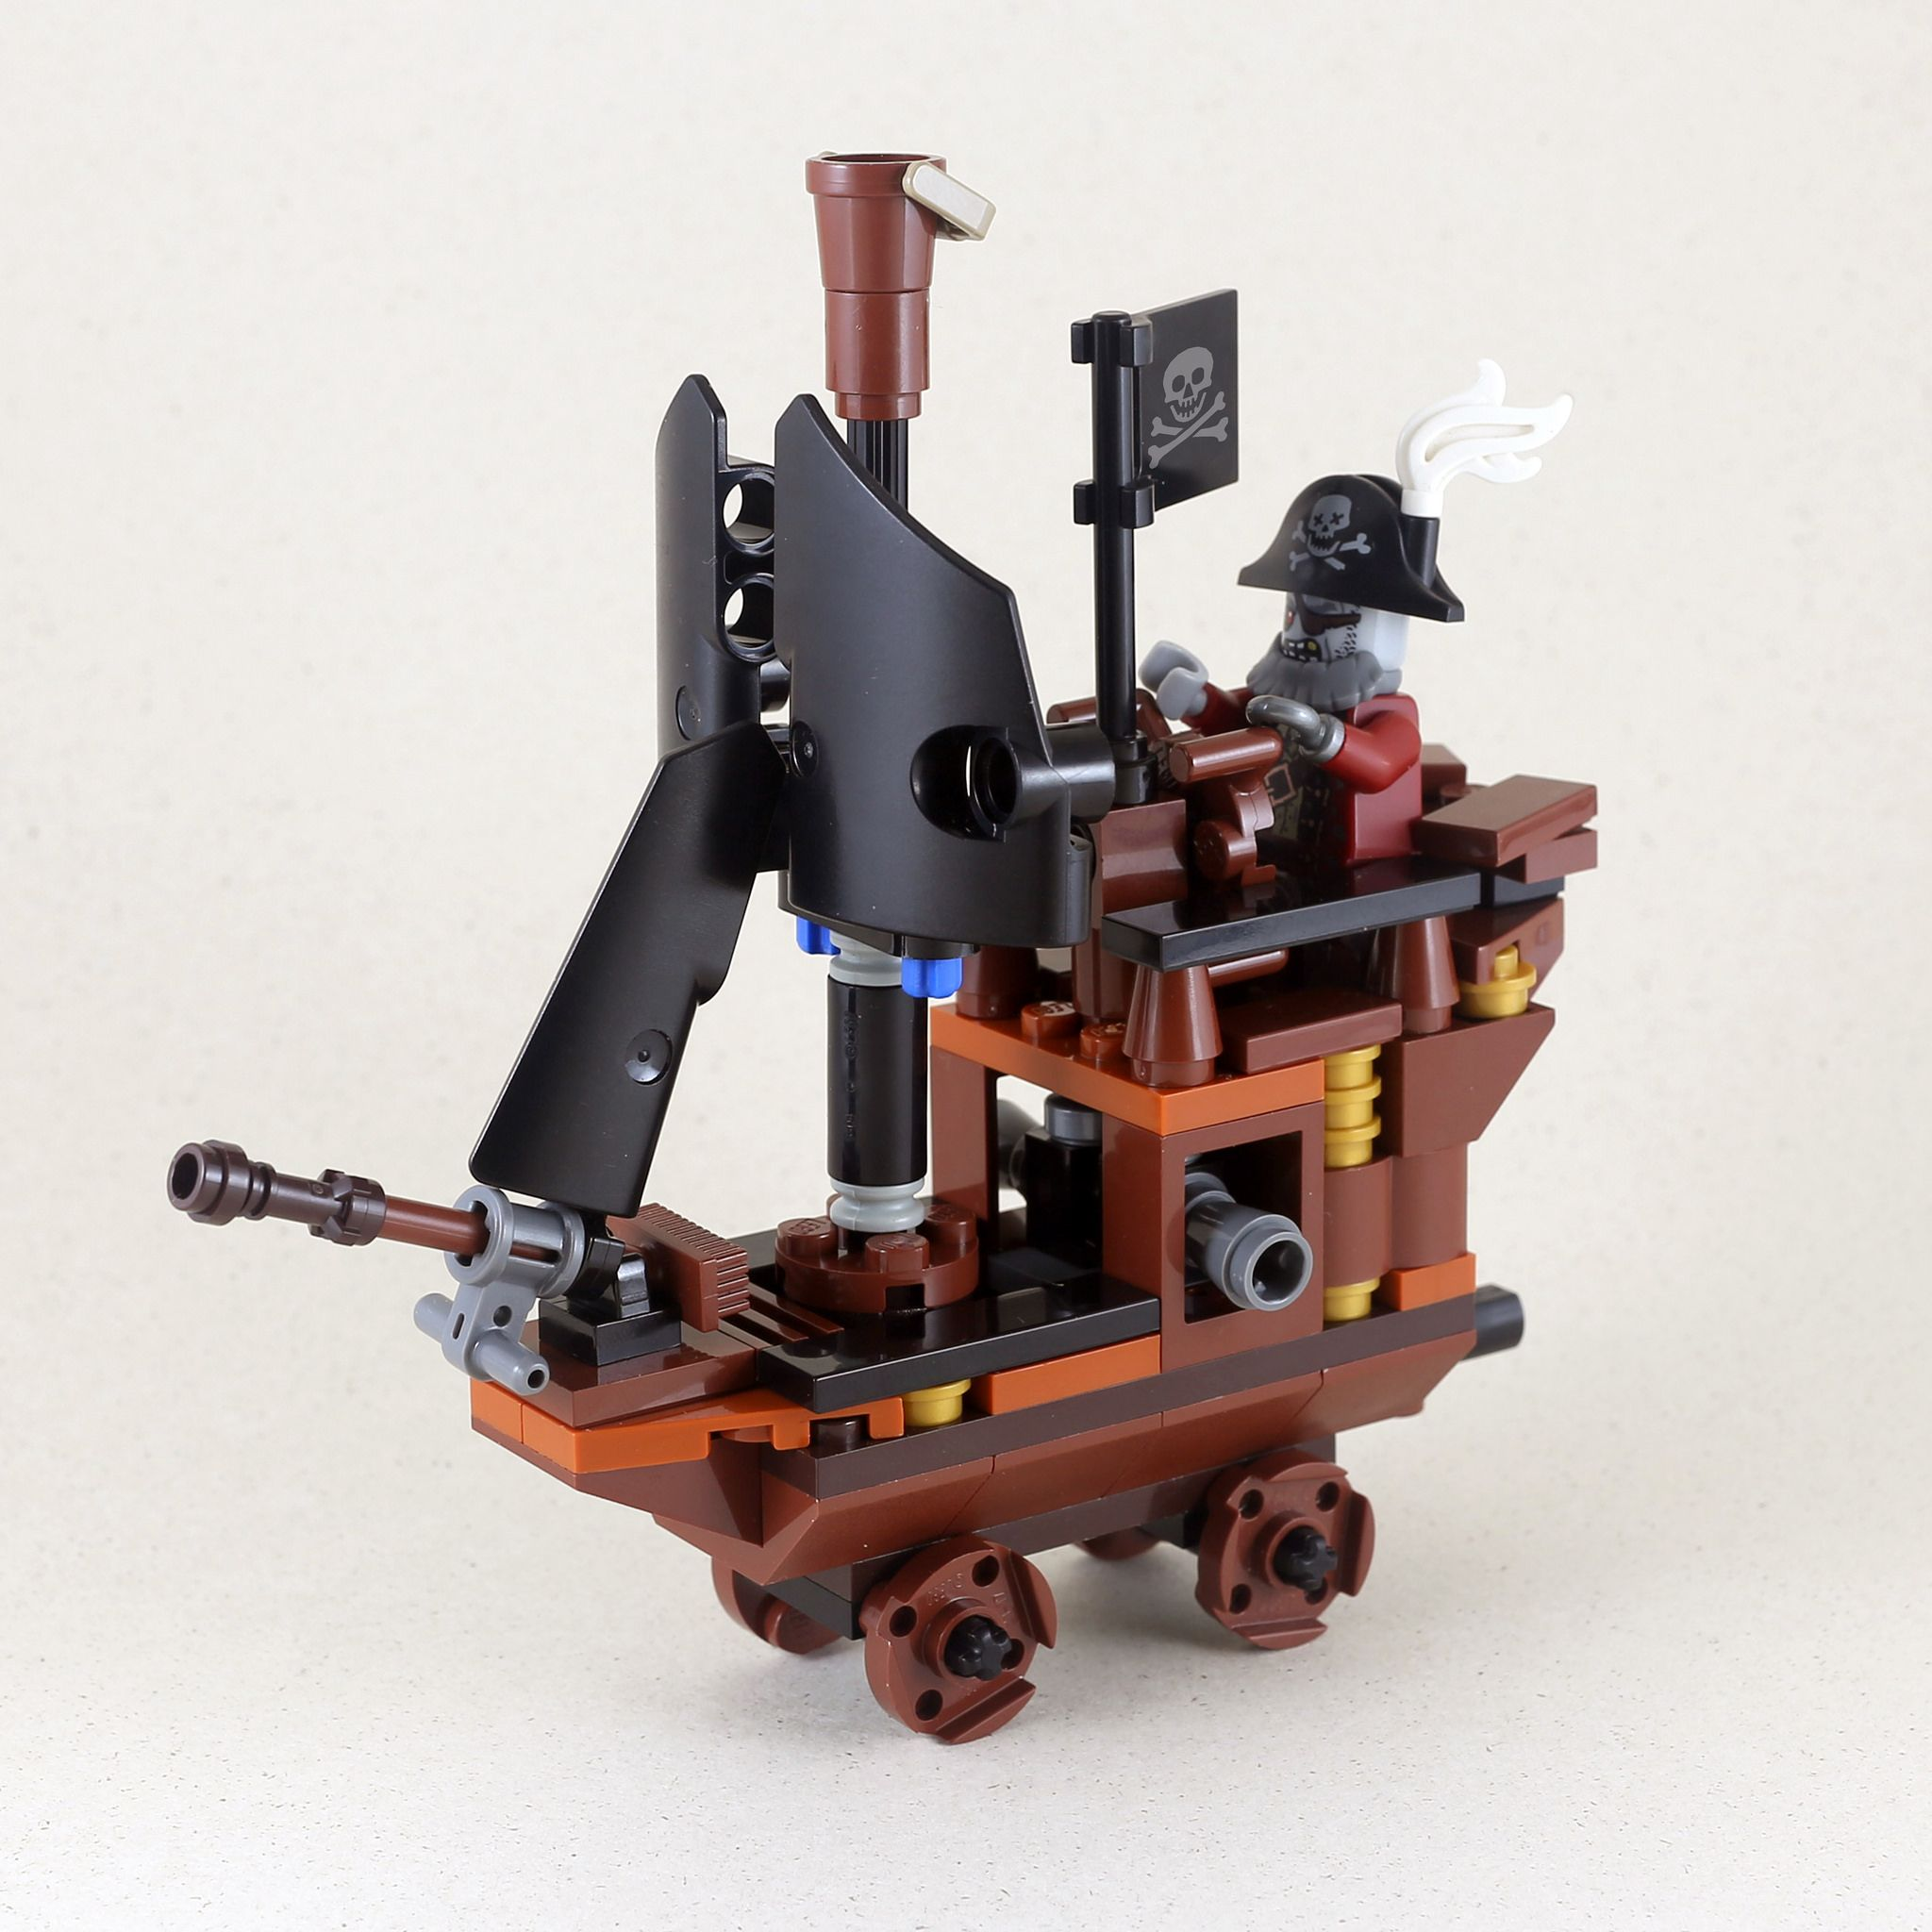 Zombie Pirate Ship-1 | Pirate ships, Lego and Lego creations